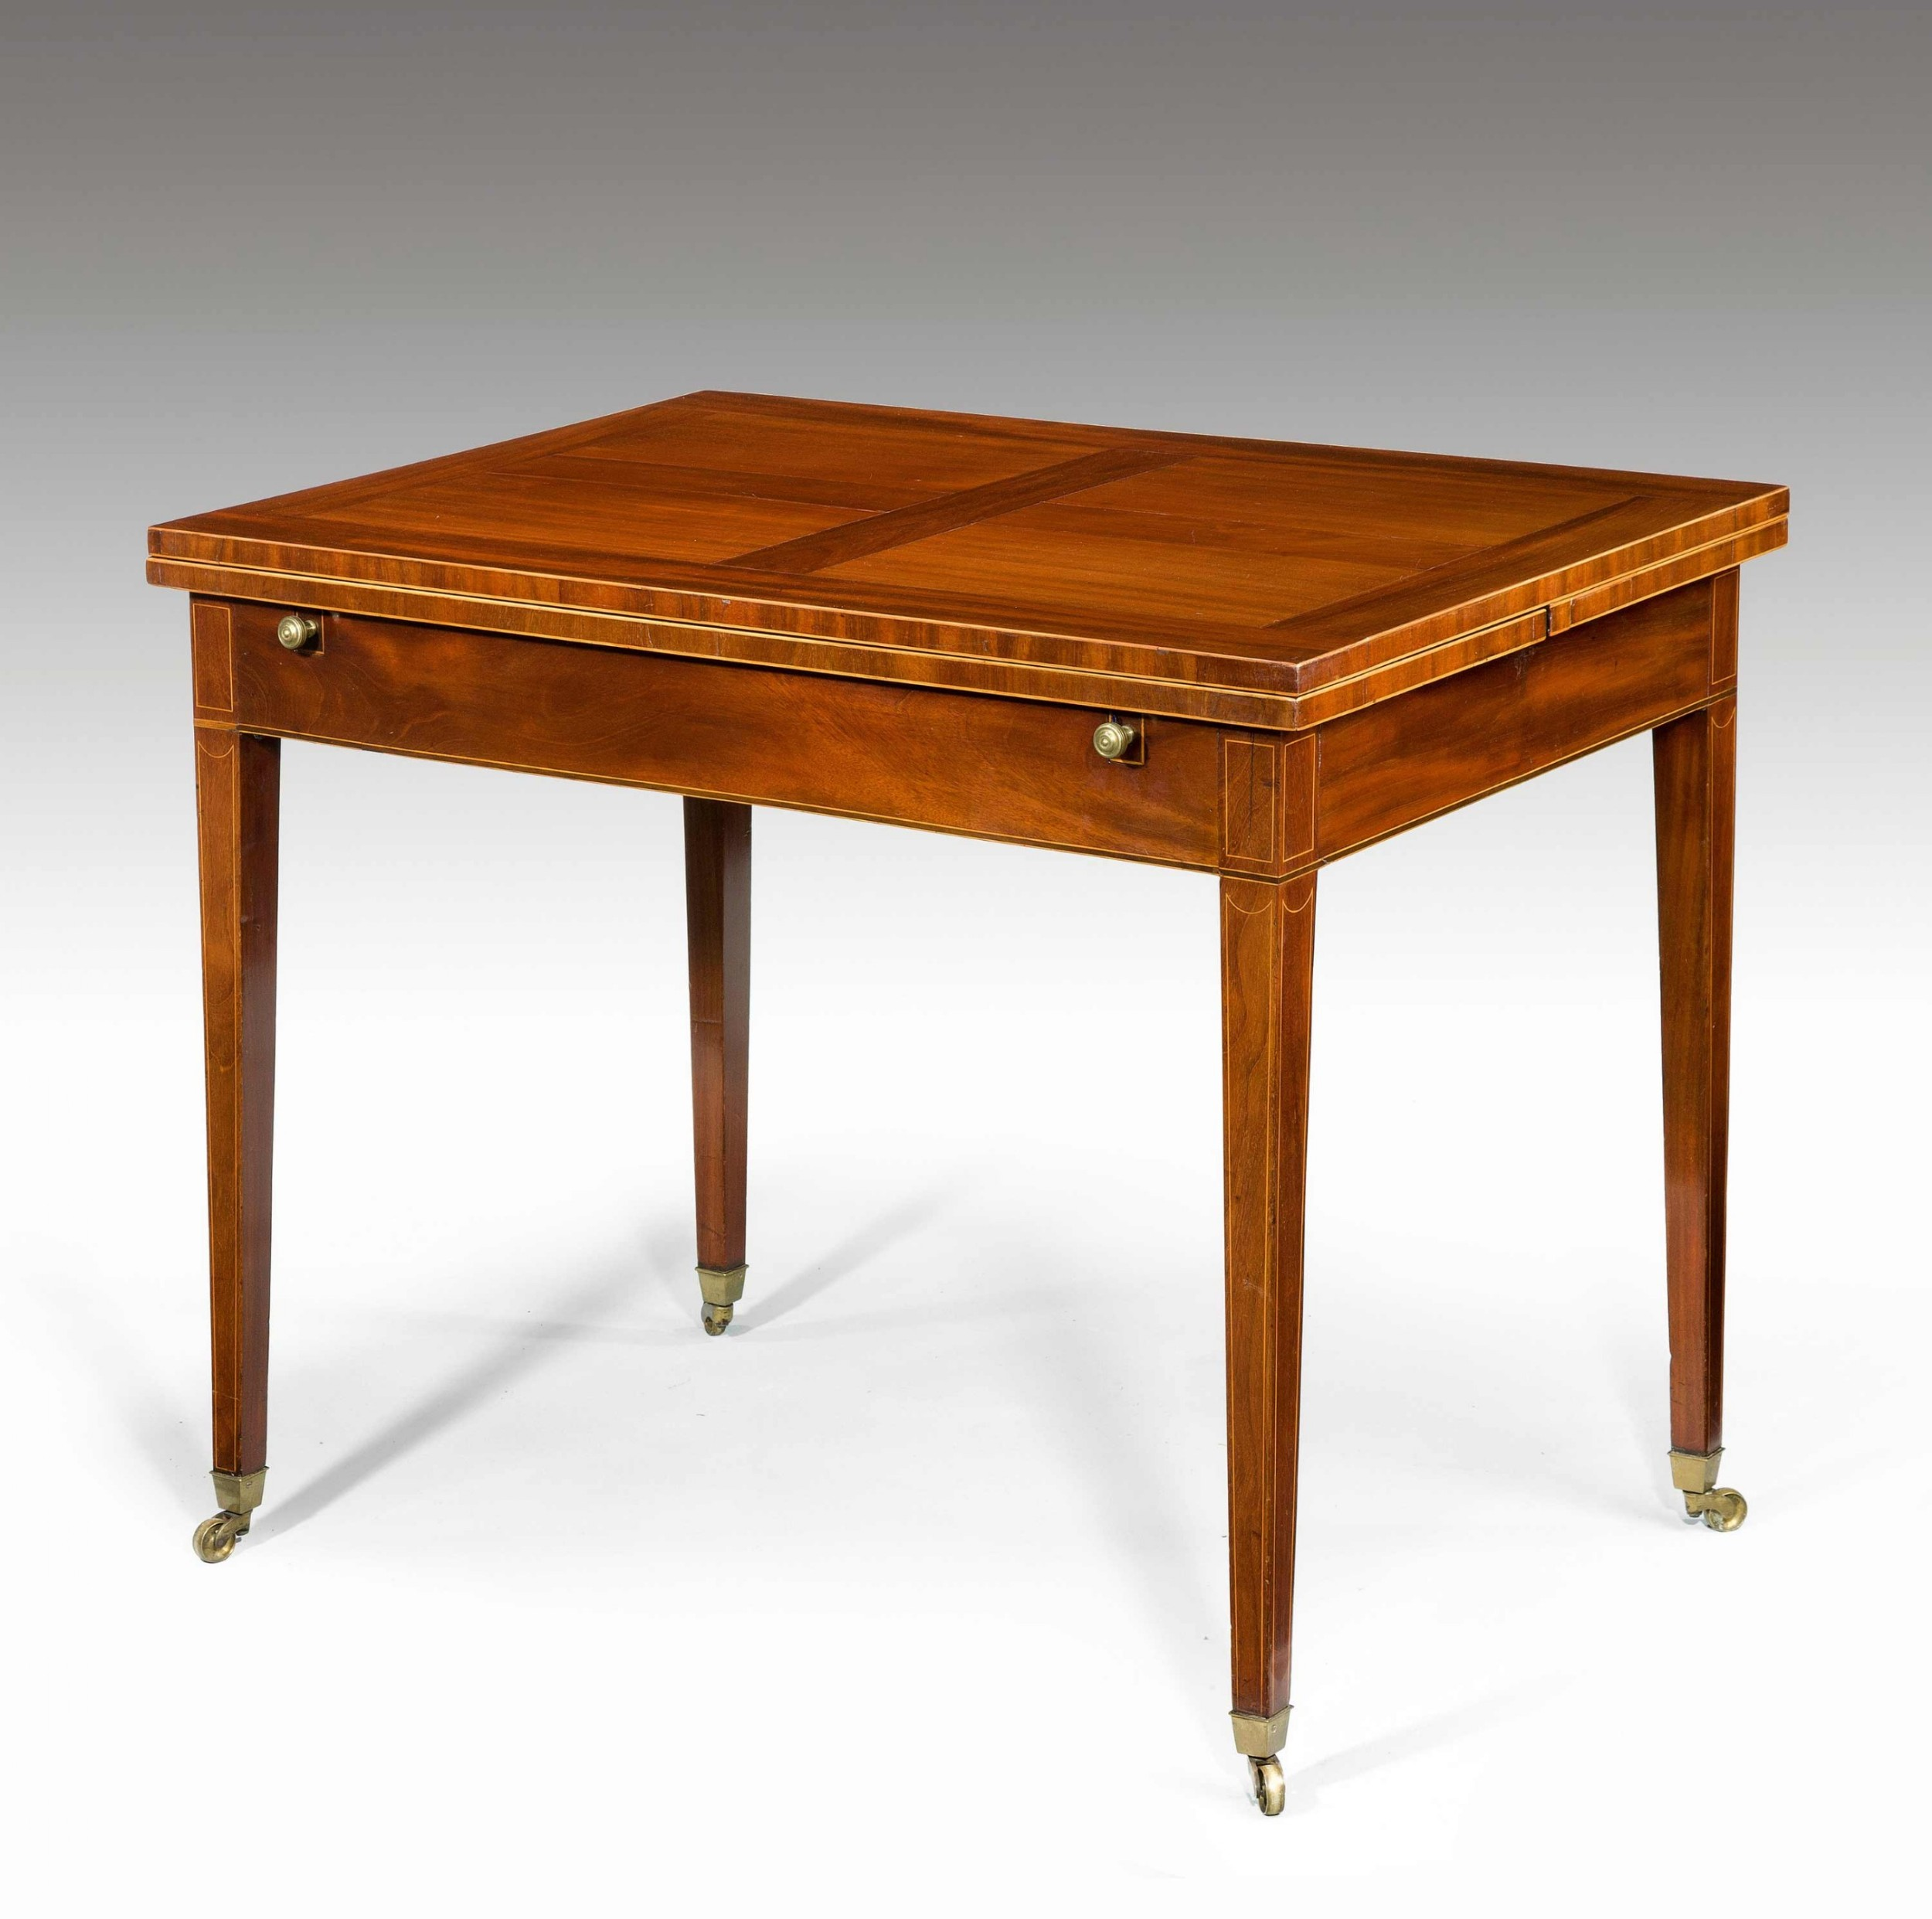 george iii period 'universal' table